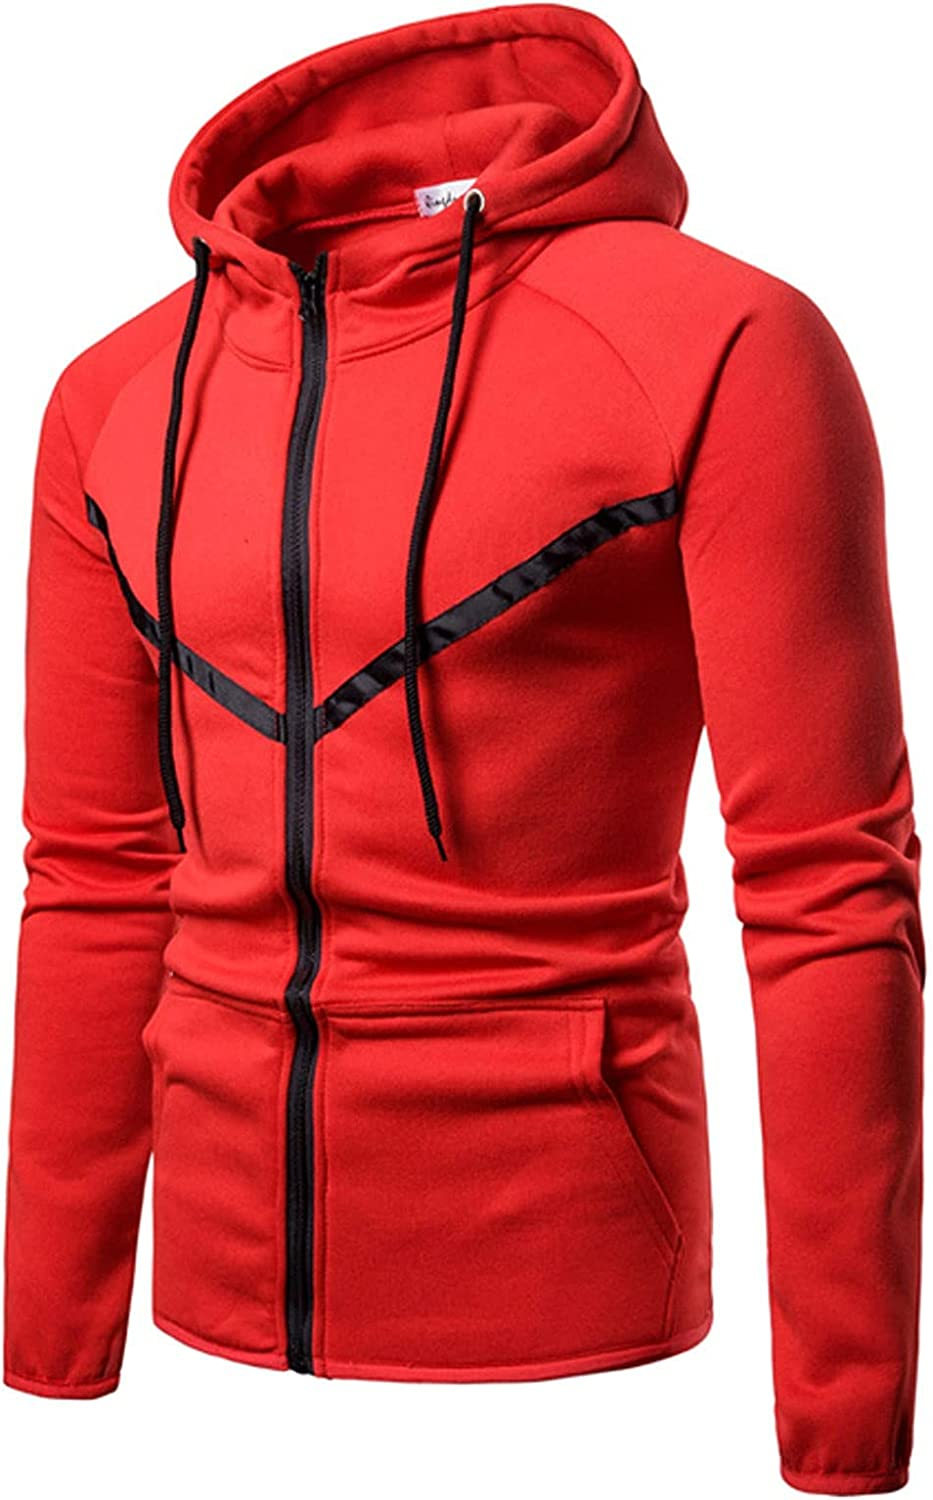 XXBR Hoodies for Mens, Zipper Color Block Hooded Sweatshirts Men's Fall Slim Fit Workout Fitness Sports Casual Jackets